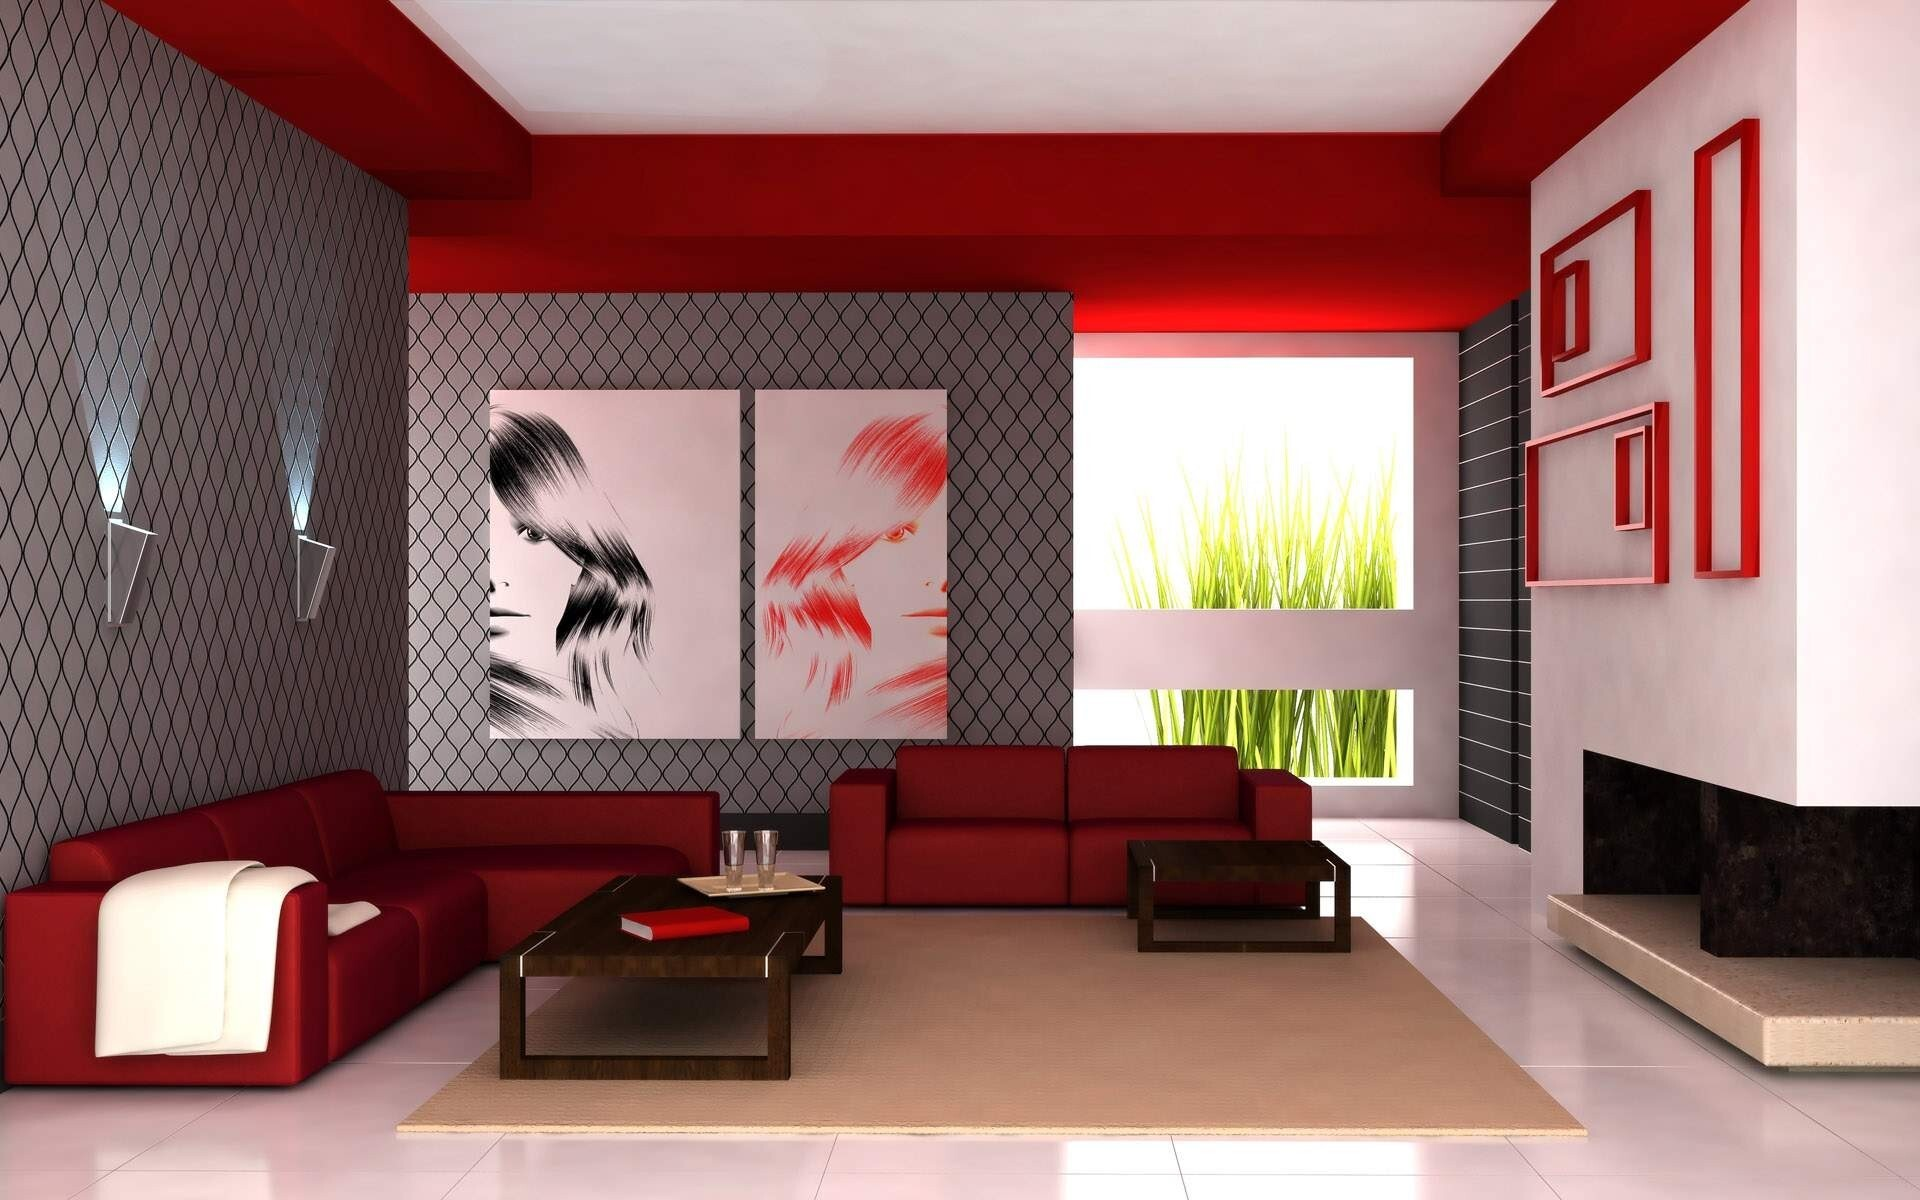 House and bungalow wallpapers